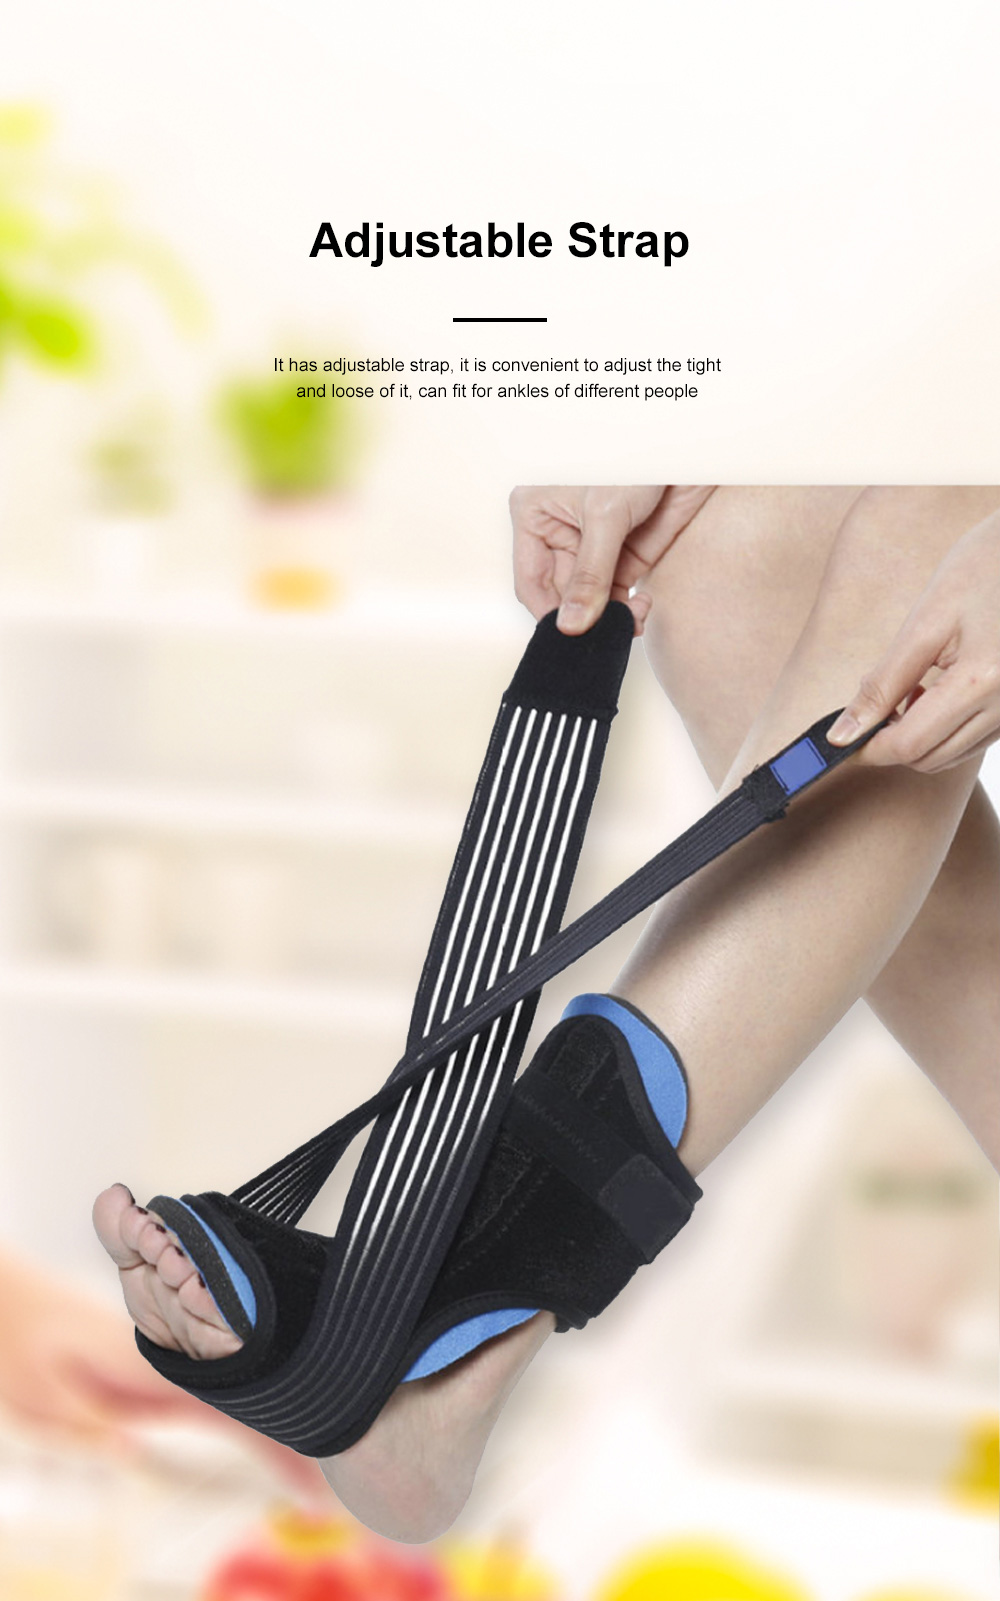 Ankle Support Adjustable Ankle Brace Breathable Nylon Material Highly Elastic Perfect For The Ankle Tendons Correcting 4